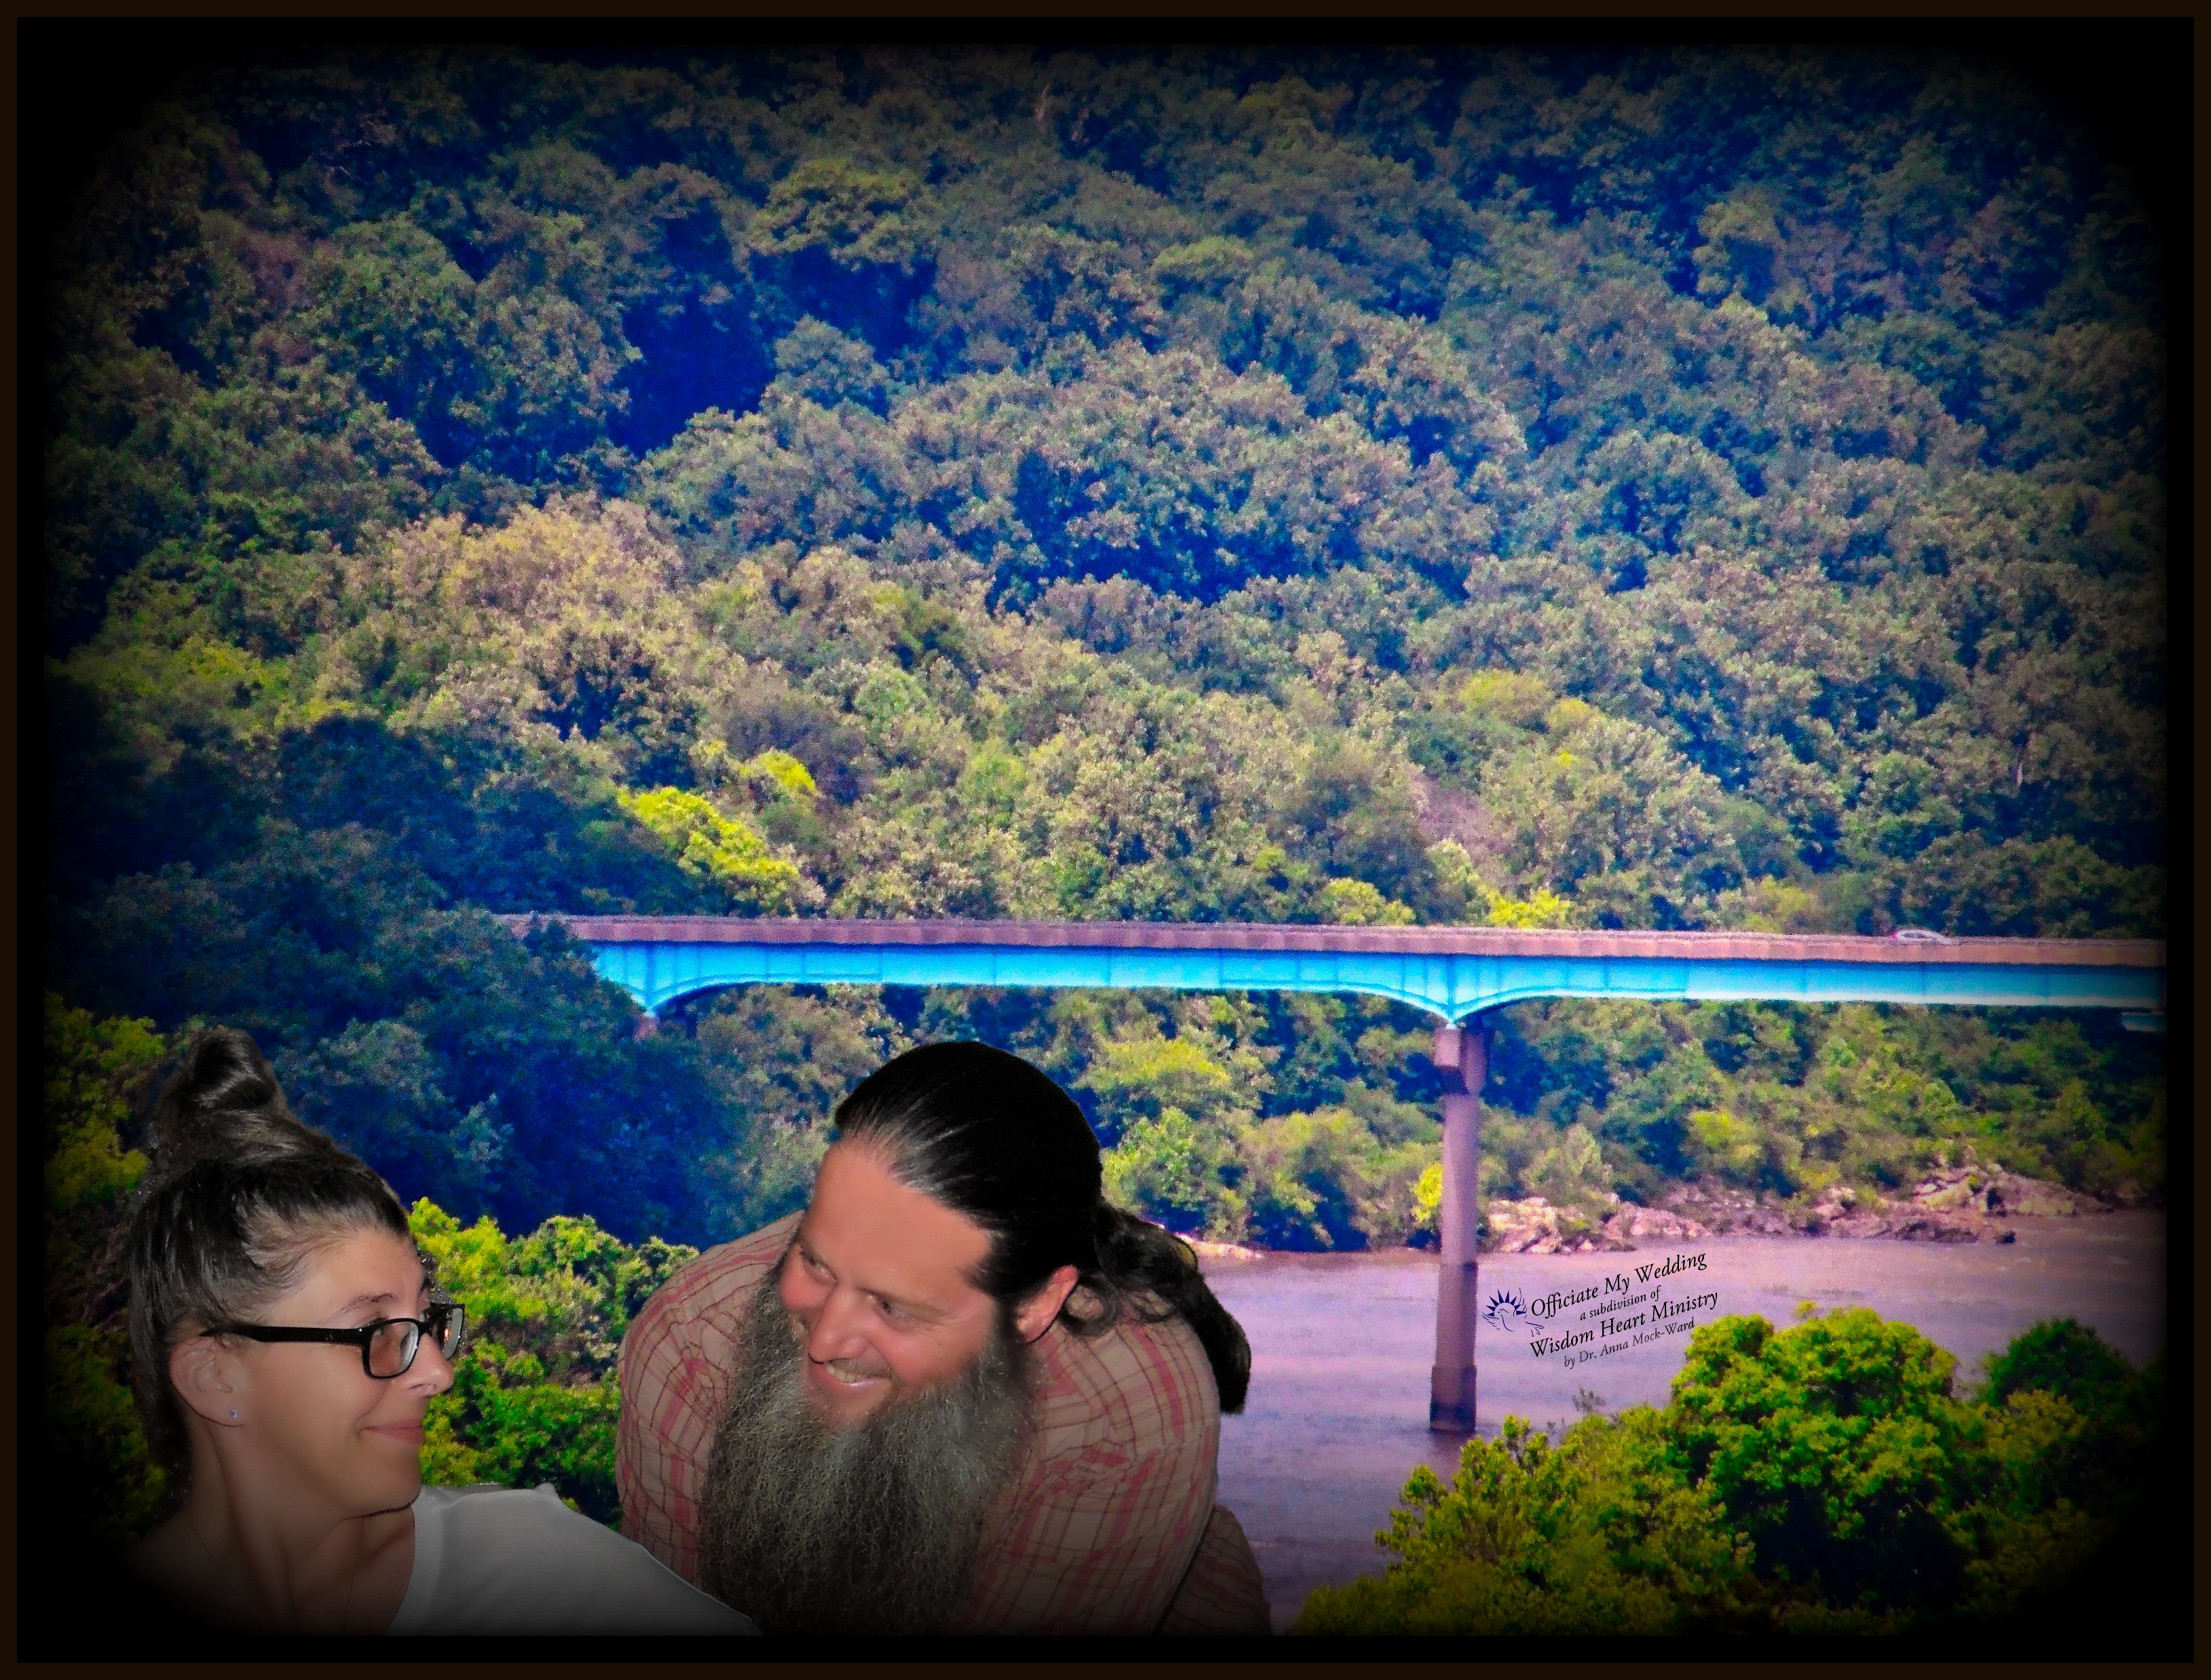 Bridge of Eternal Love